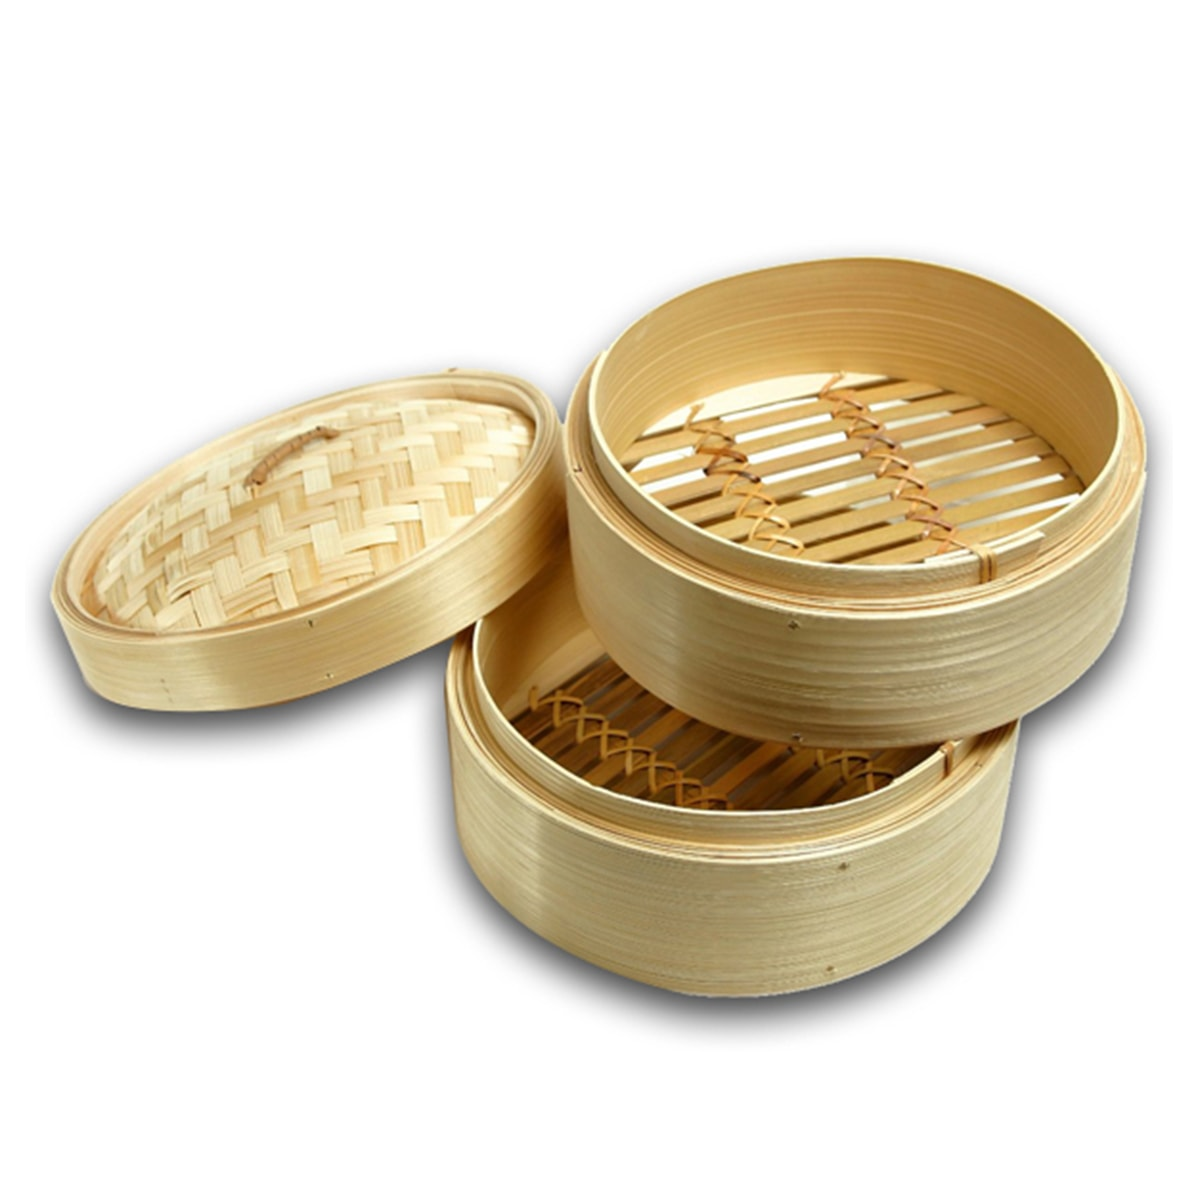 Buy IAG Products Bamboo Steamer (Lid and Base) - 14 inch